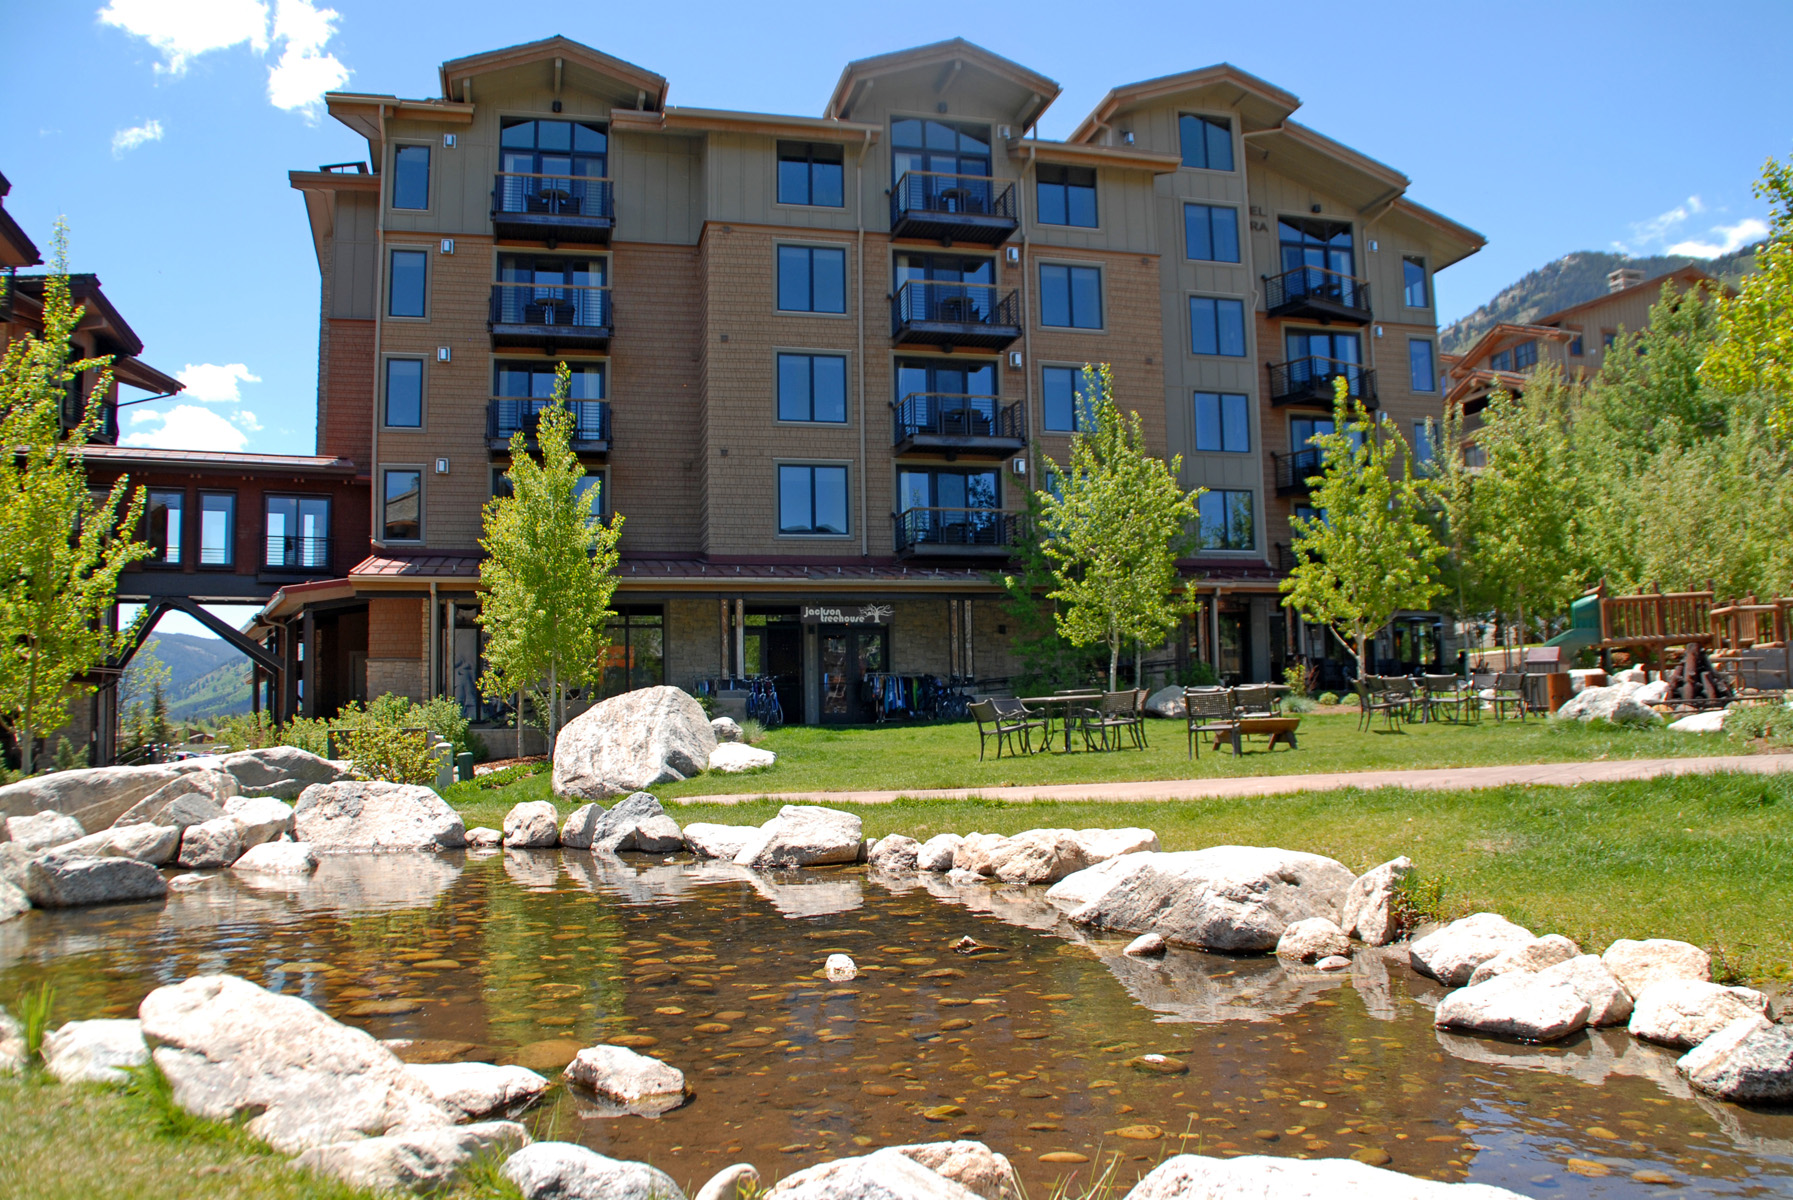 Condominium for Sale at Hotel Terra ski-inski-out condo 3335 W. Village Road Unit 223 Teton Village, Wyoming, 83025 Jackson Hole, United States